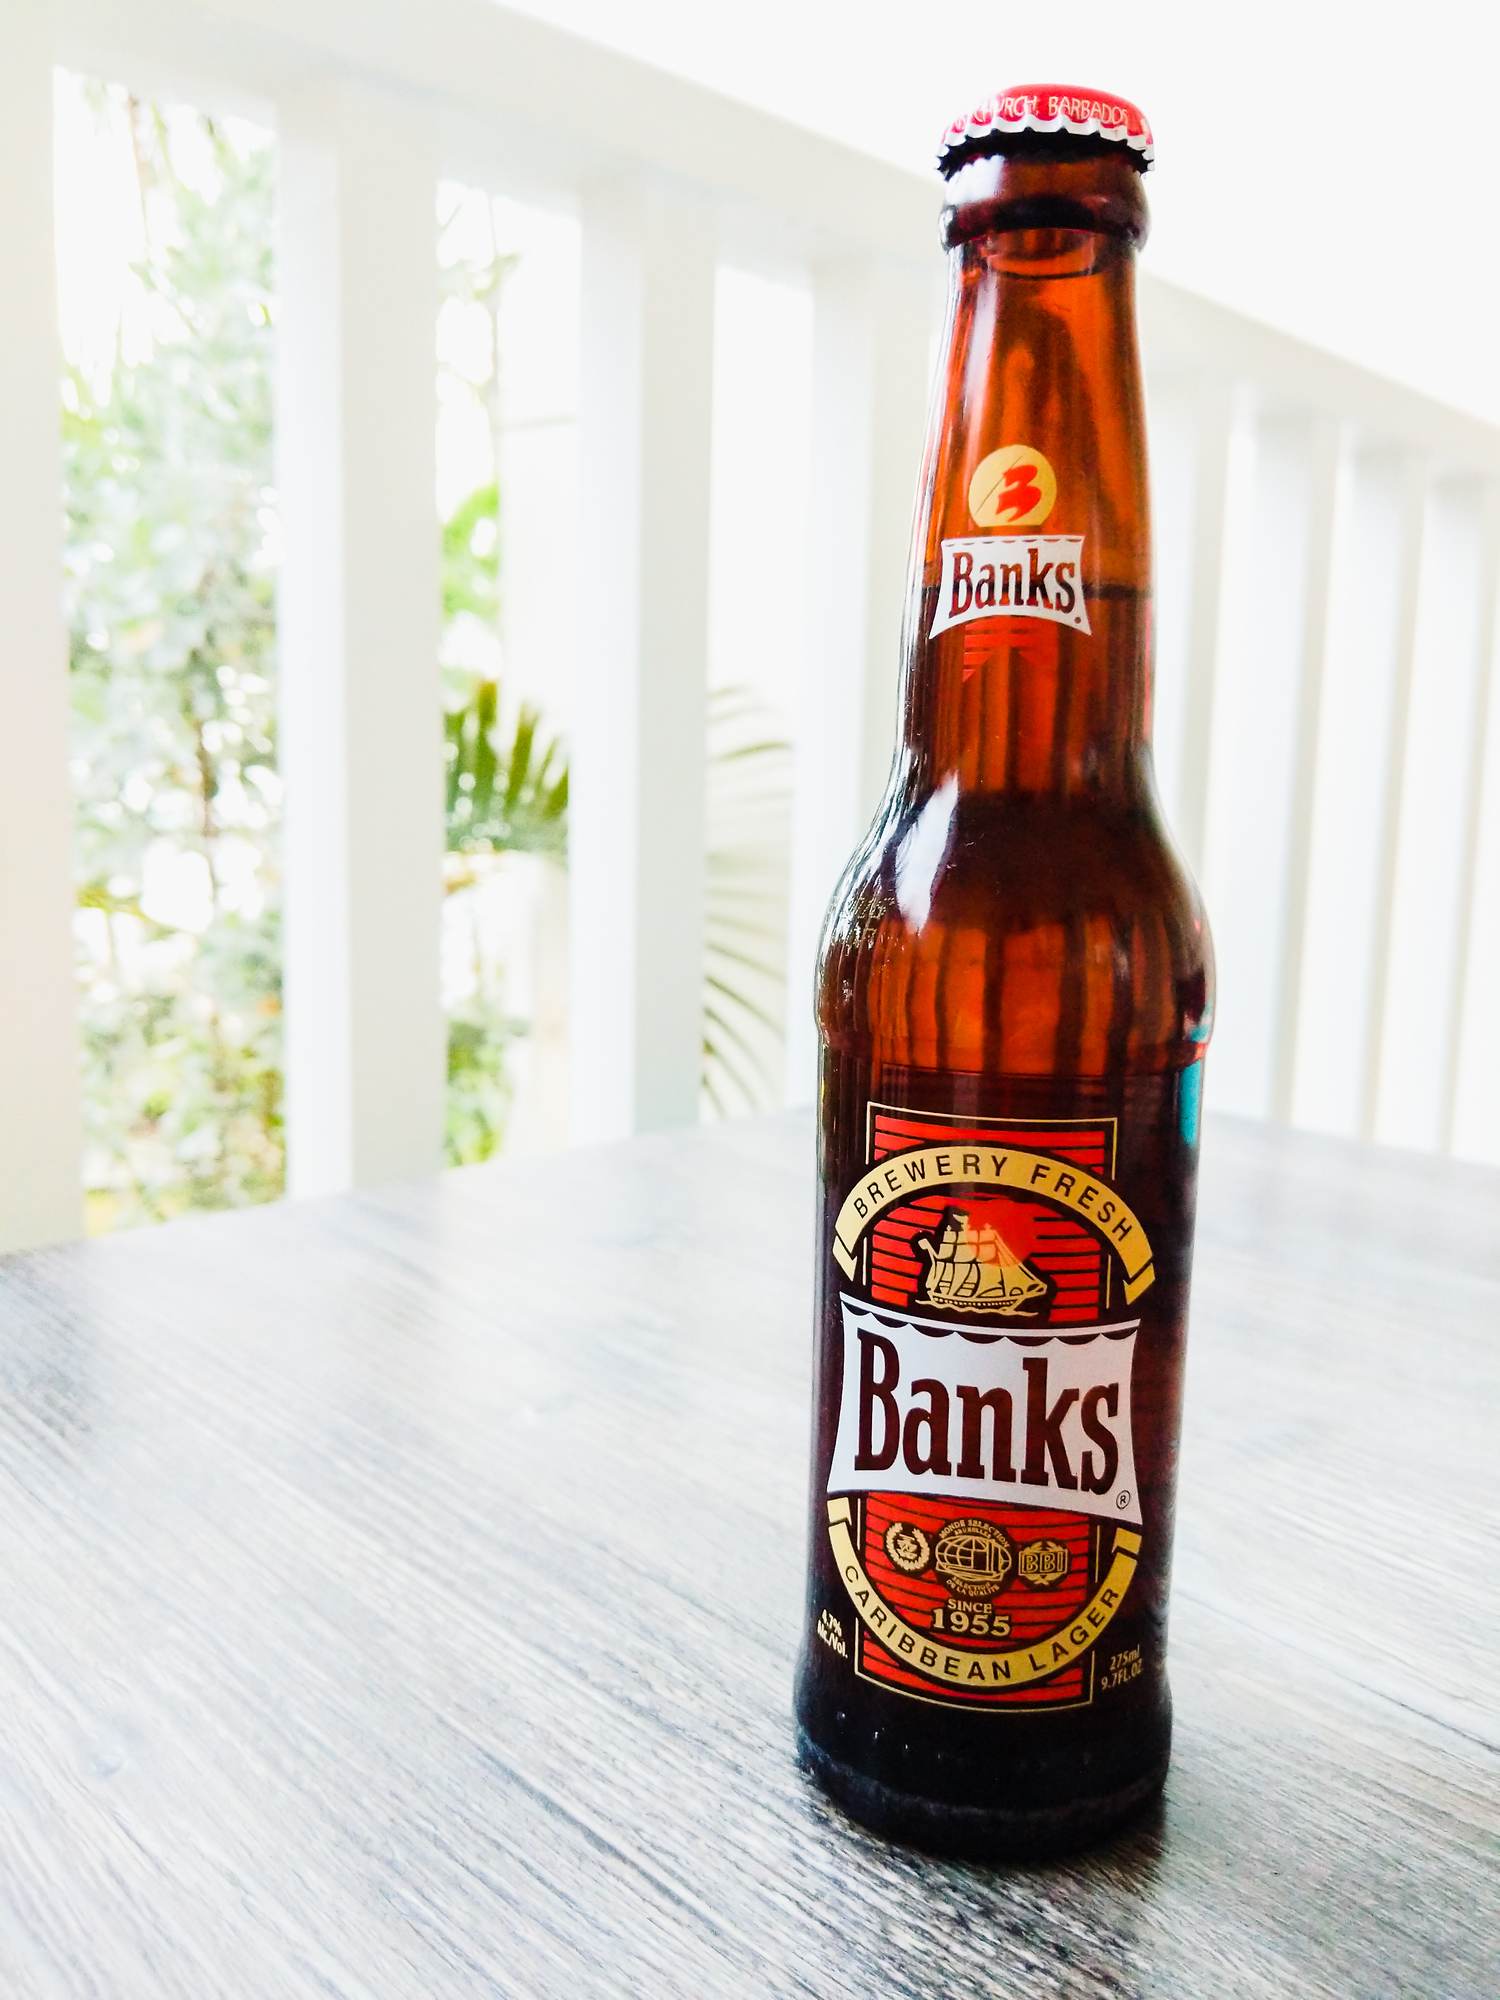 Banks beer is just one Barbadian food to eat or drink, discover the other 22 things to eat in Barbados.